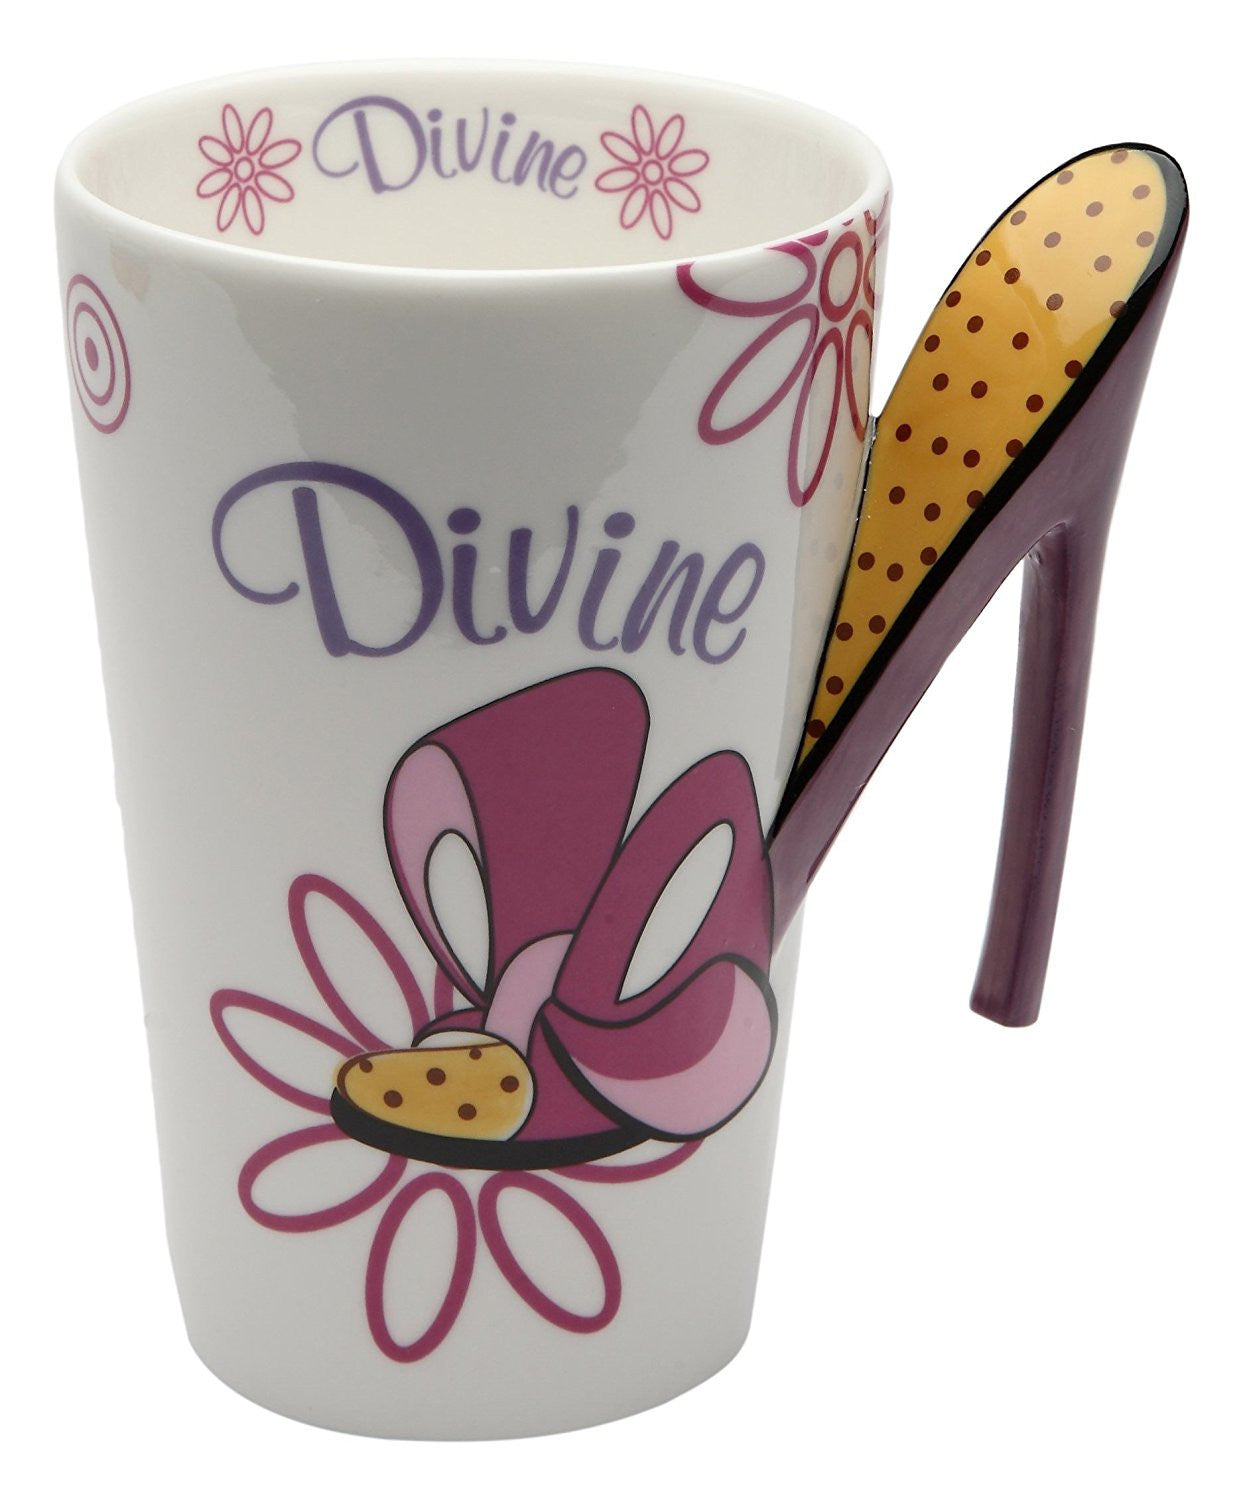 Divine Mug: Ceramic Mug with High Heel Shoe Handle by Cosmos Gifts